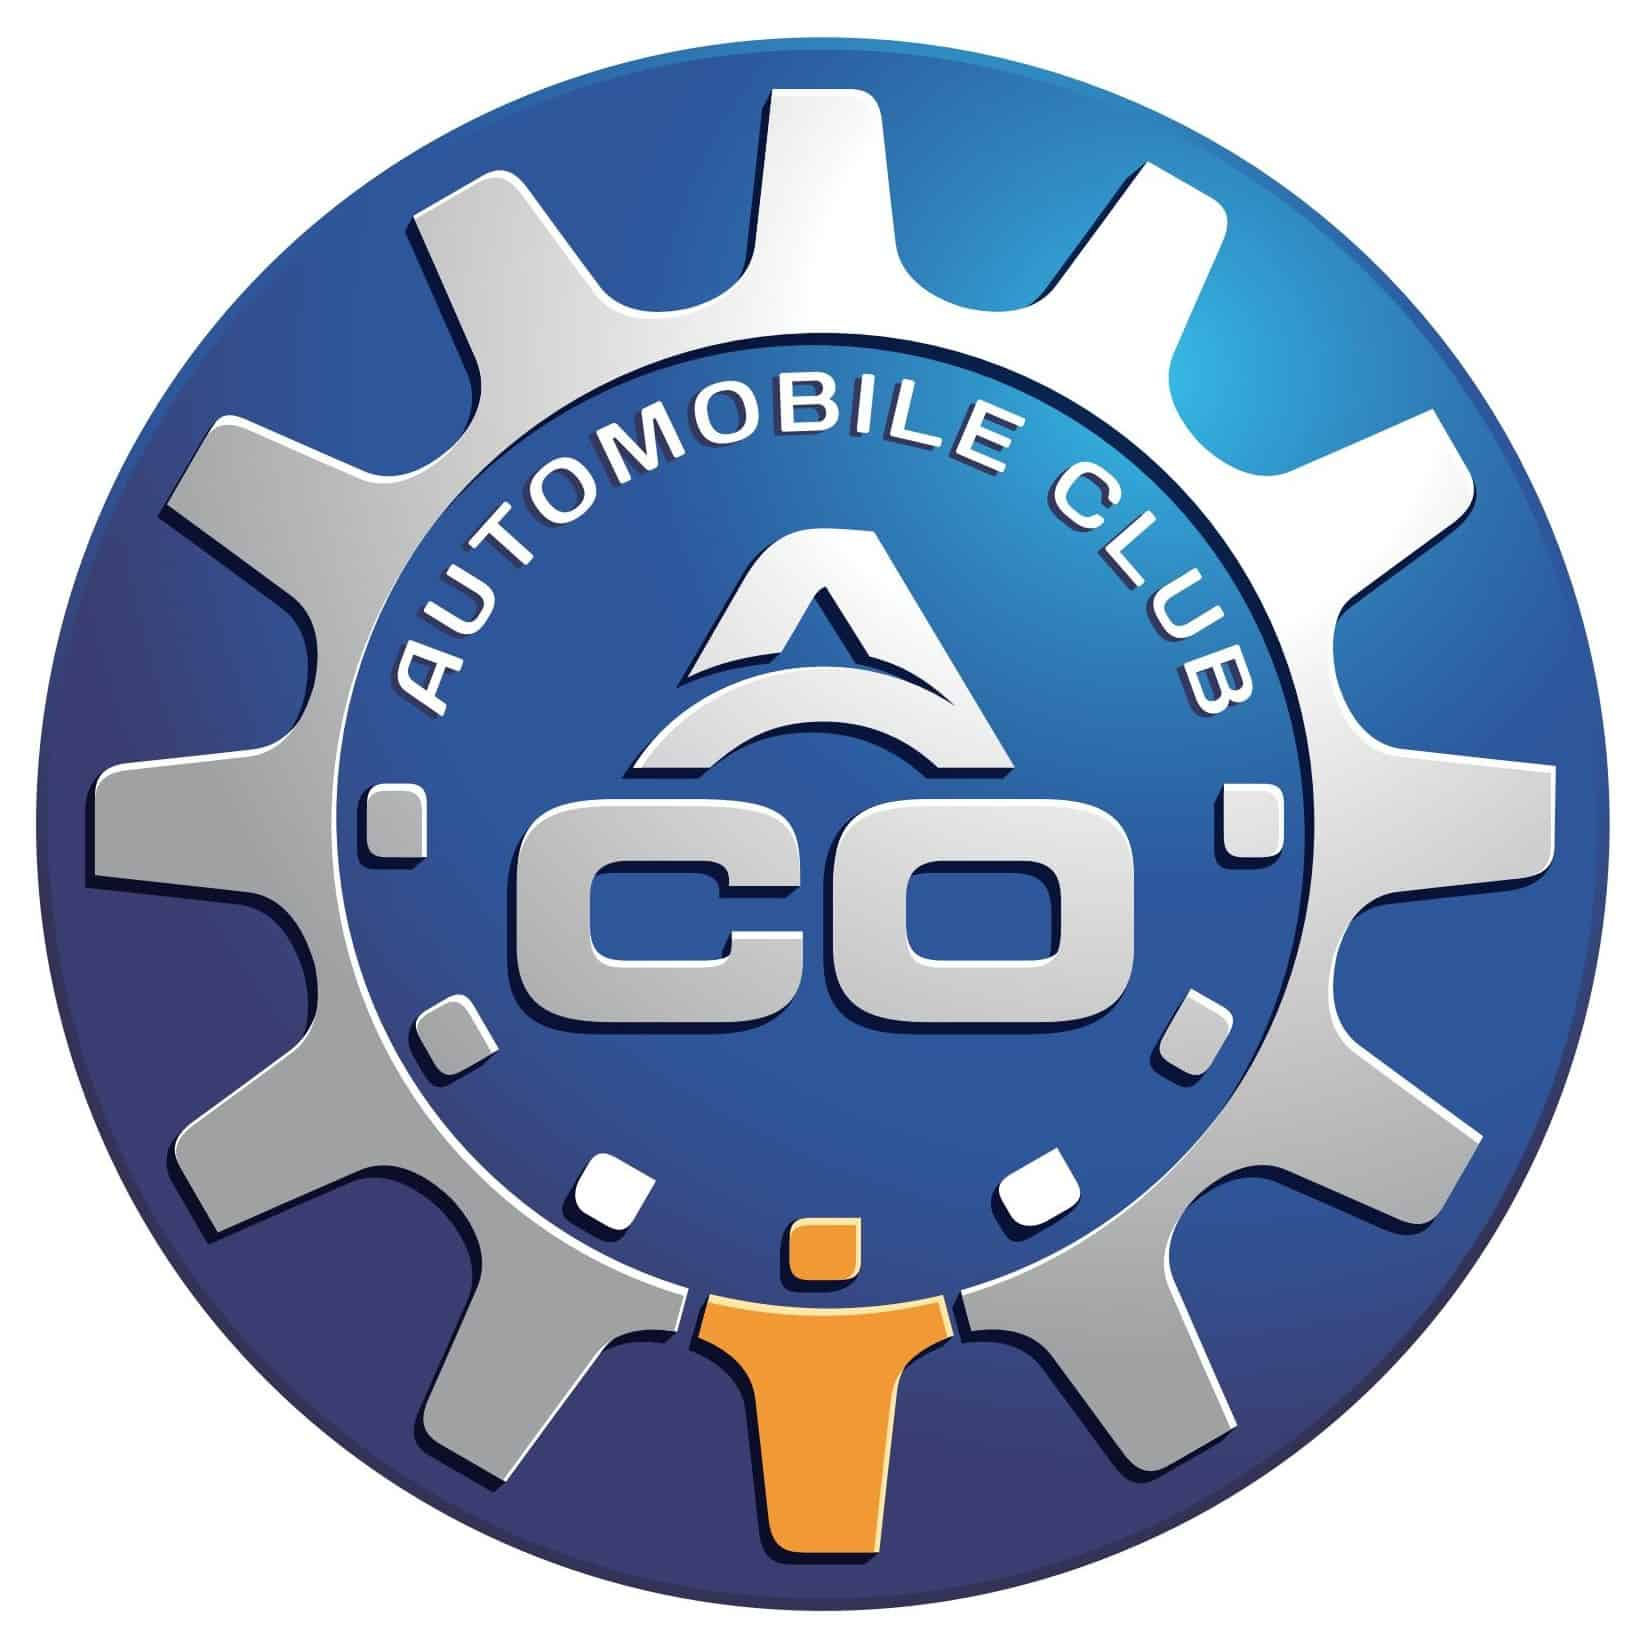 ACO Automobile Club de l Ouest logo